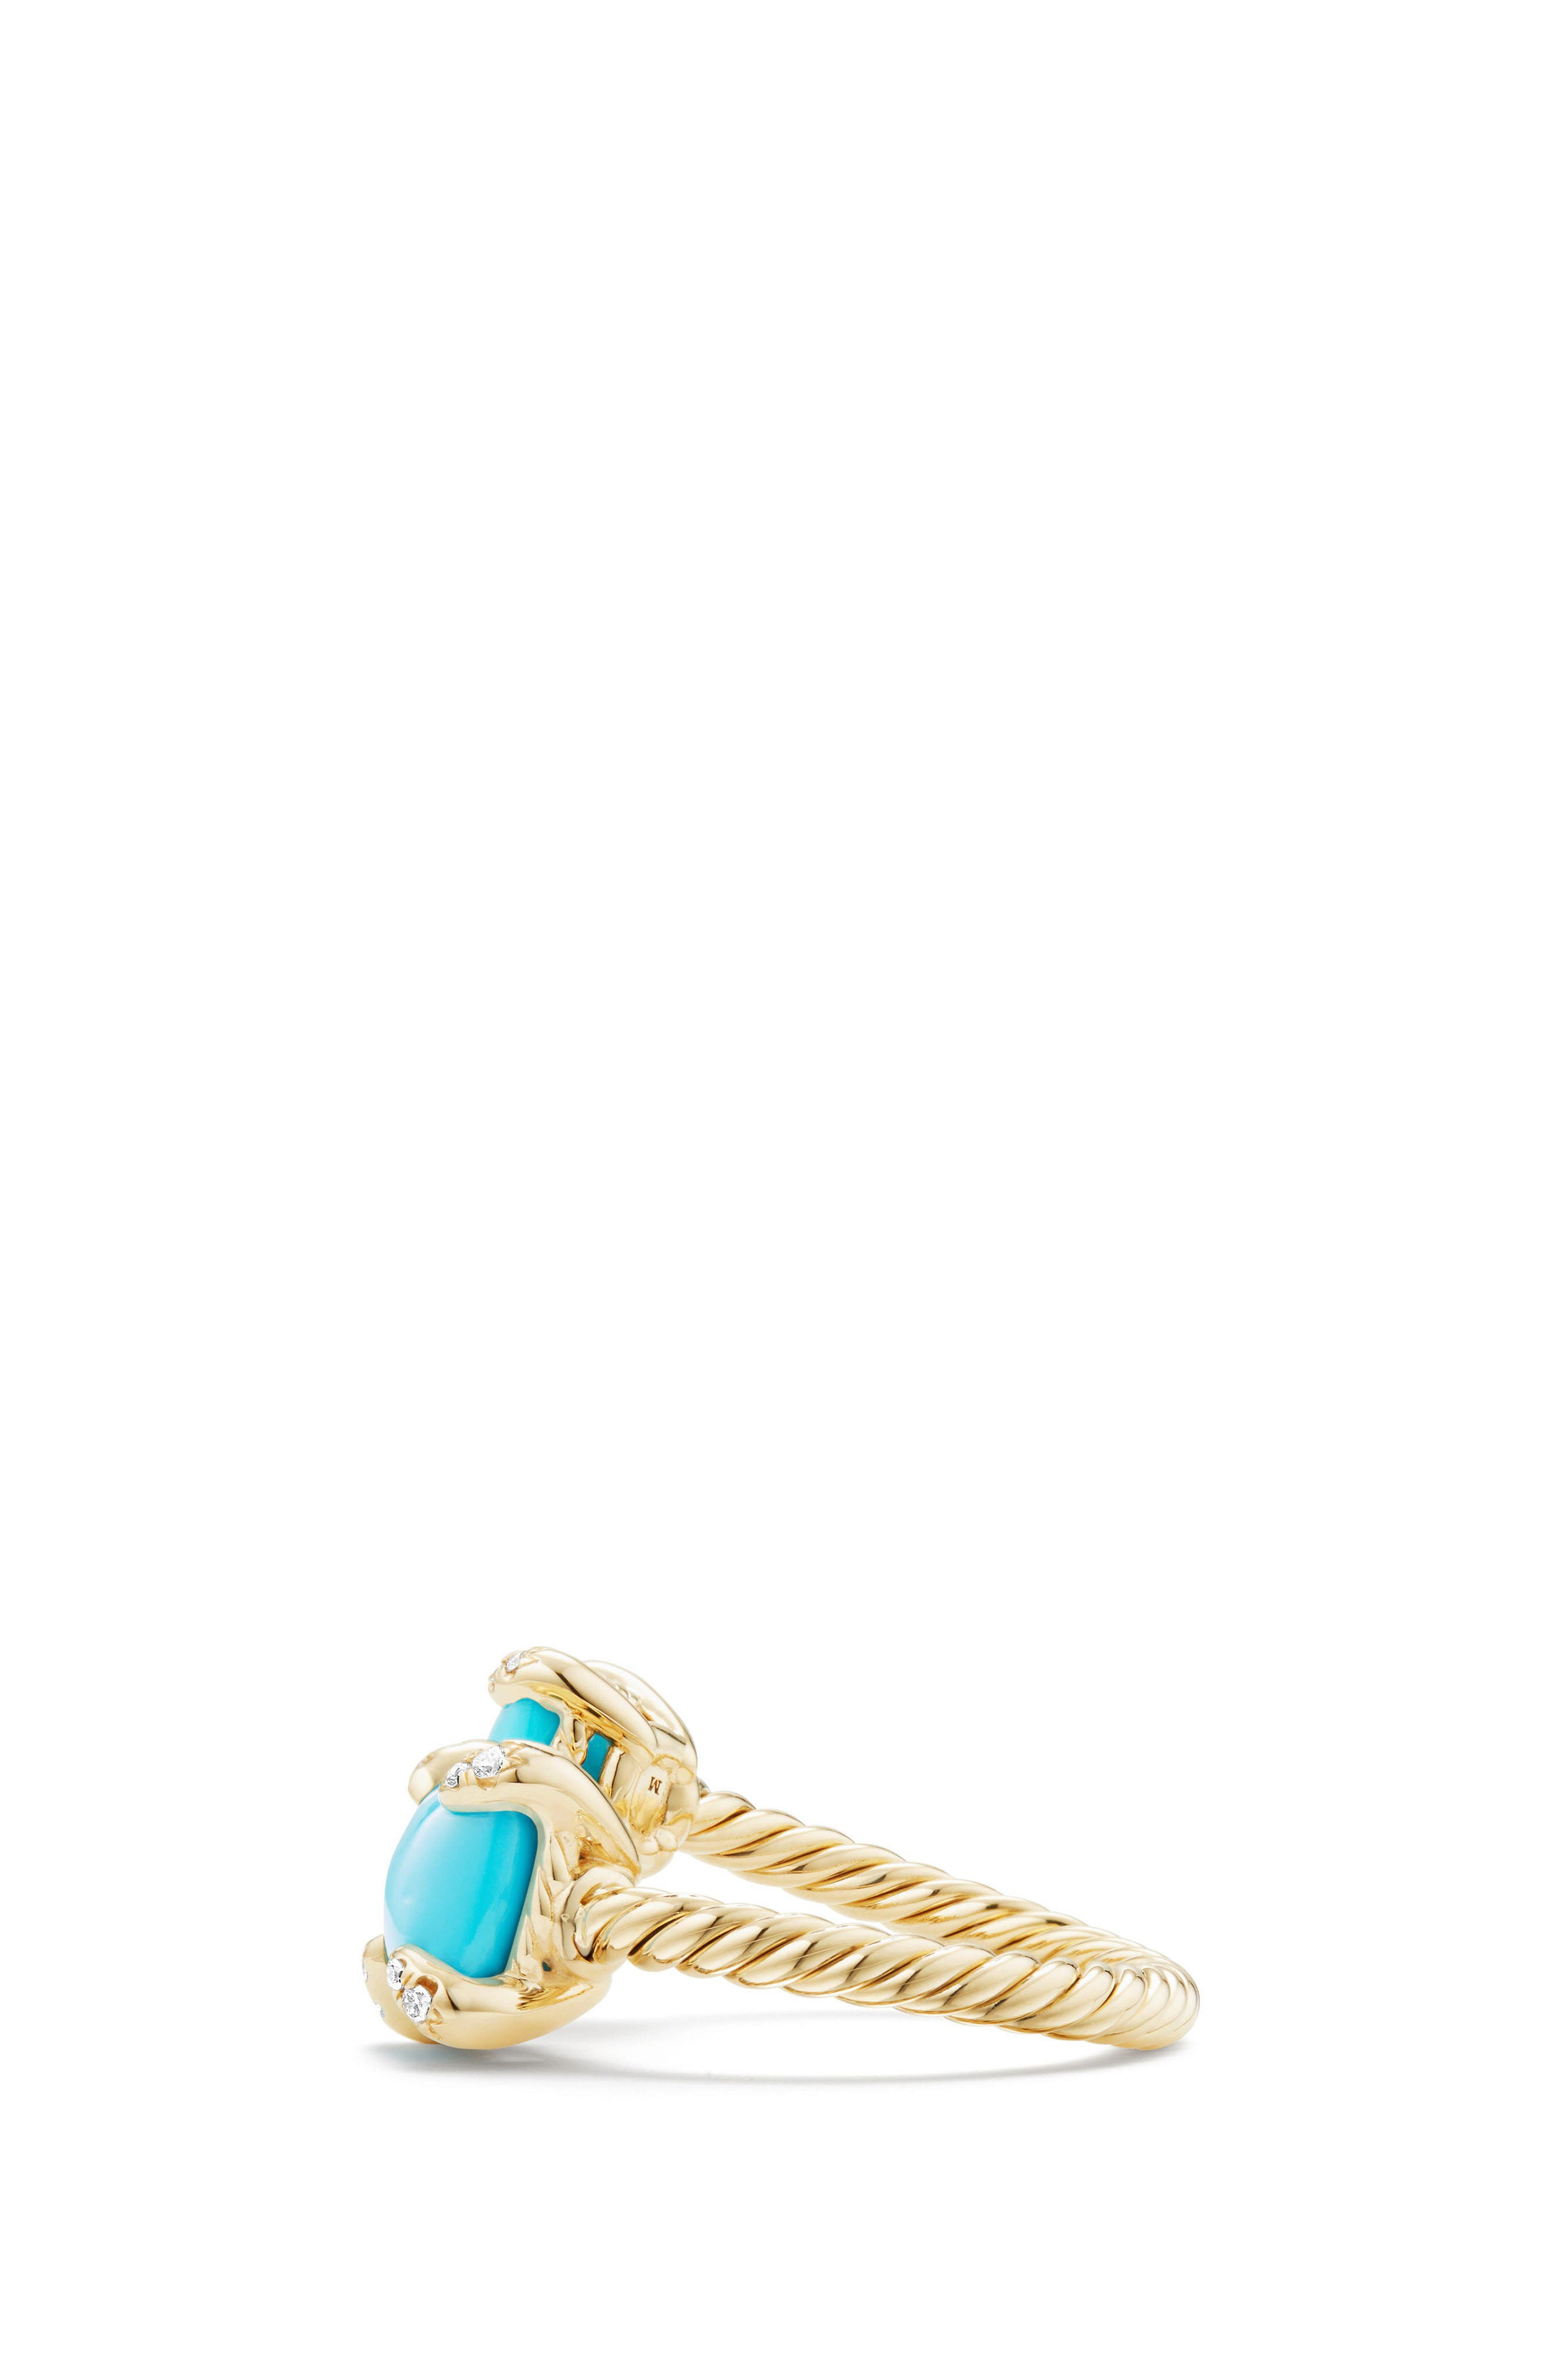 Chatelaine Bypass Diamond Ring,                             Alternate thumbnail 2, color,                             Turquoise